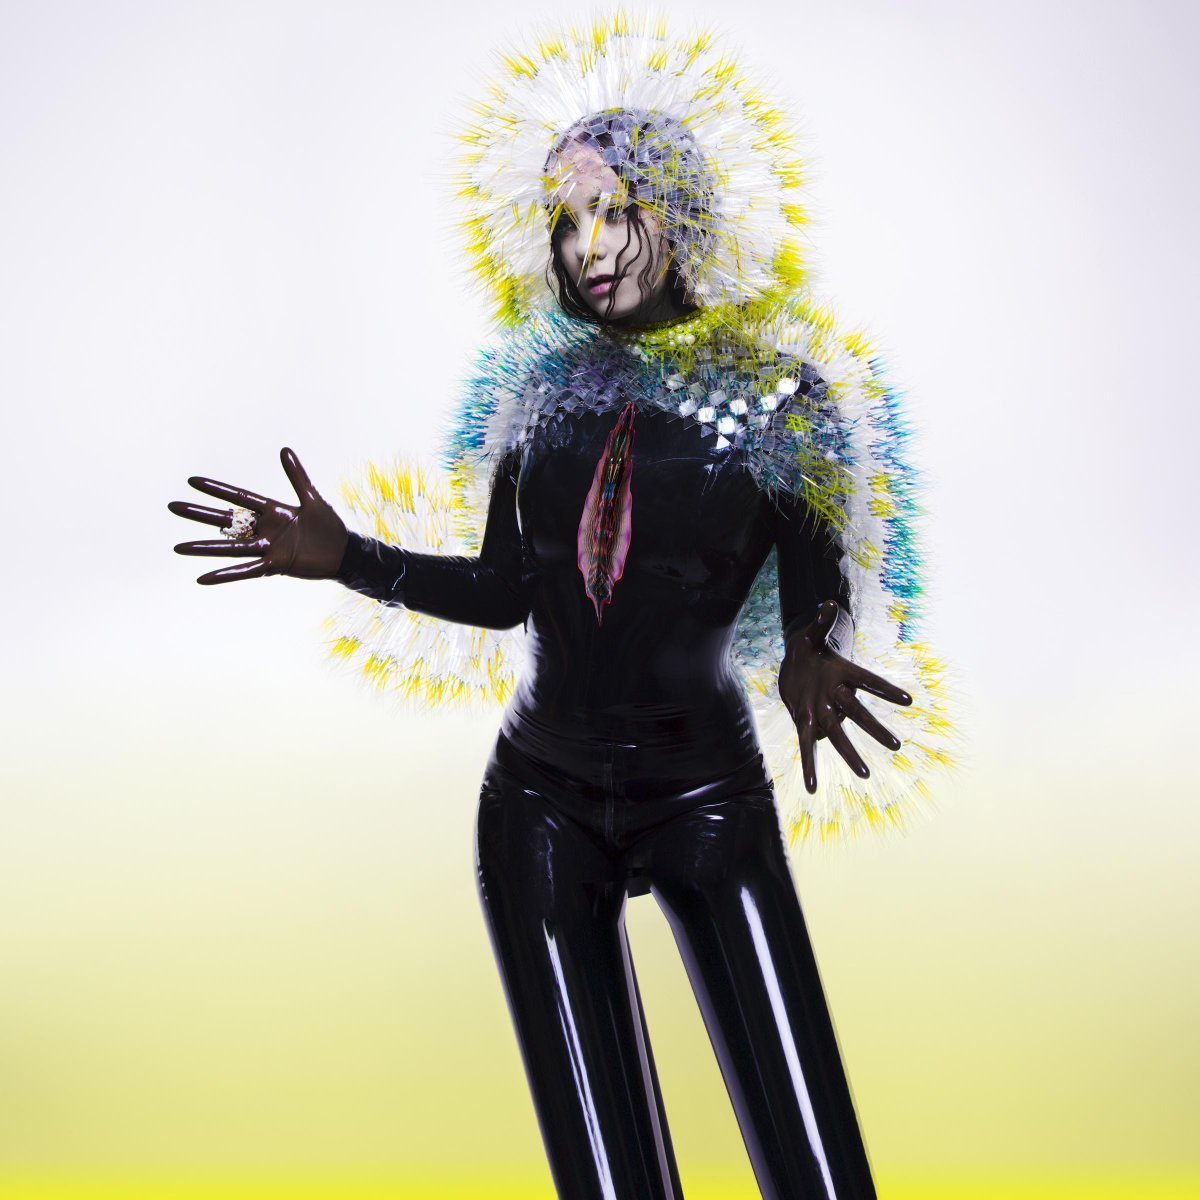 Surprise! @bjork's new album #Vulnicura is out now on @iTunes!  Download it here: http://t.co/BPUHyl9Noz http://t.co/4I7tf43ttA